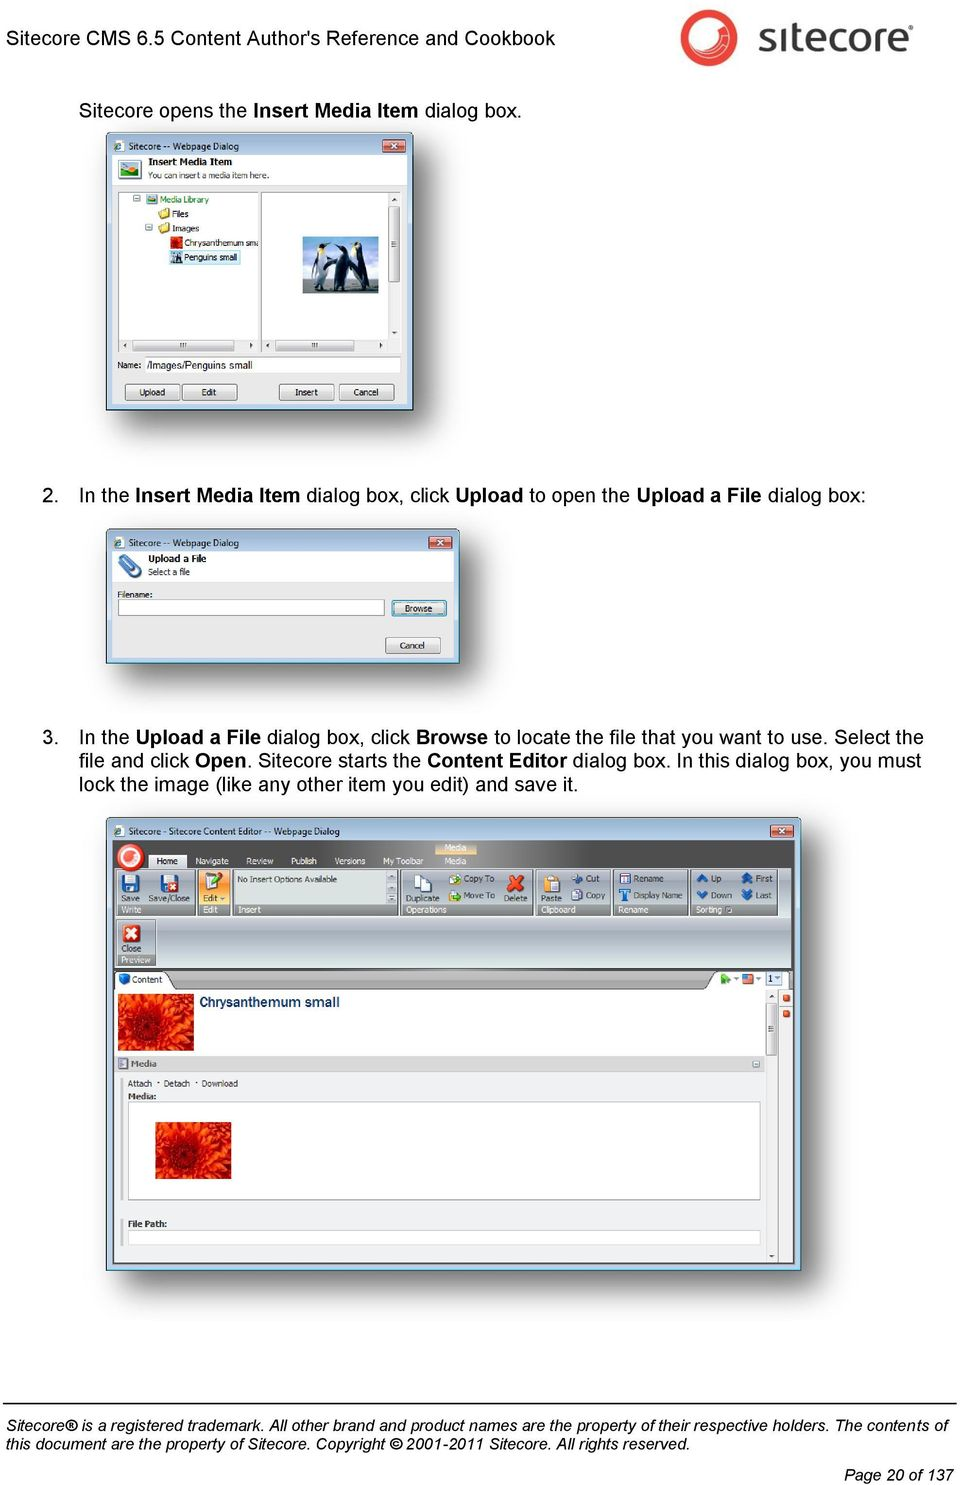 In the Upload a File dialog box, click Browse to locate the file that you want to use.